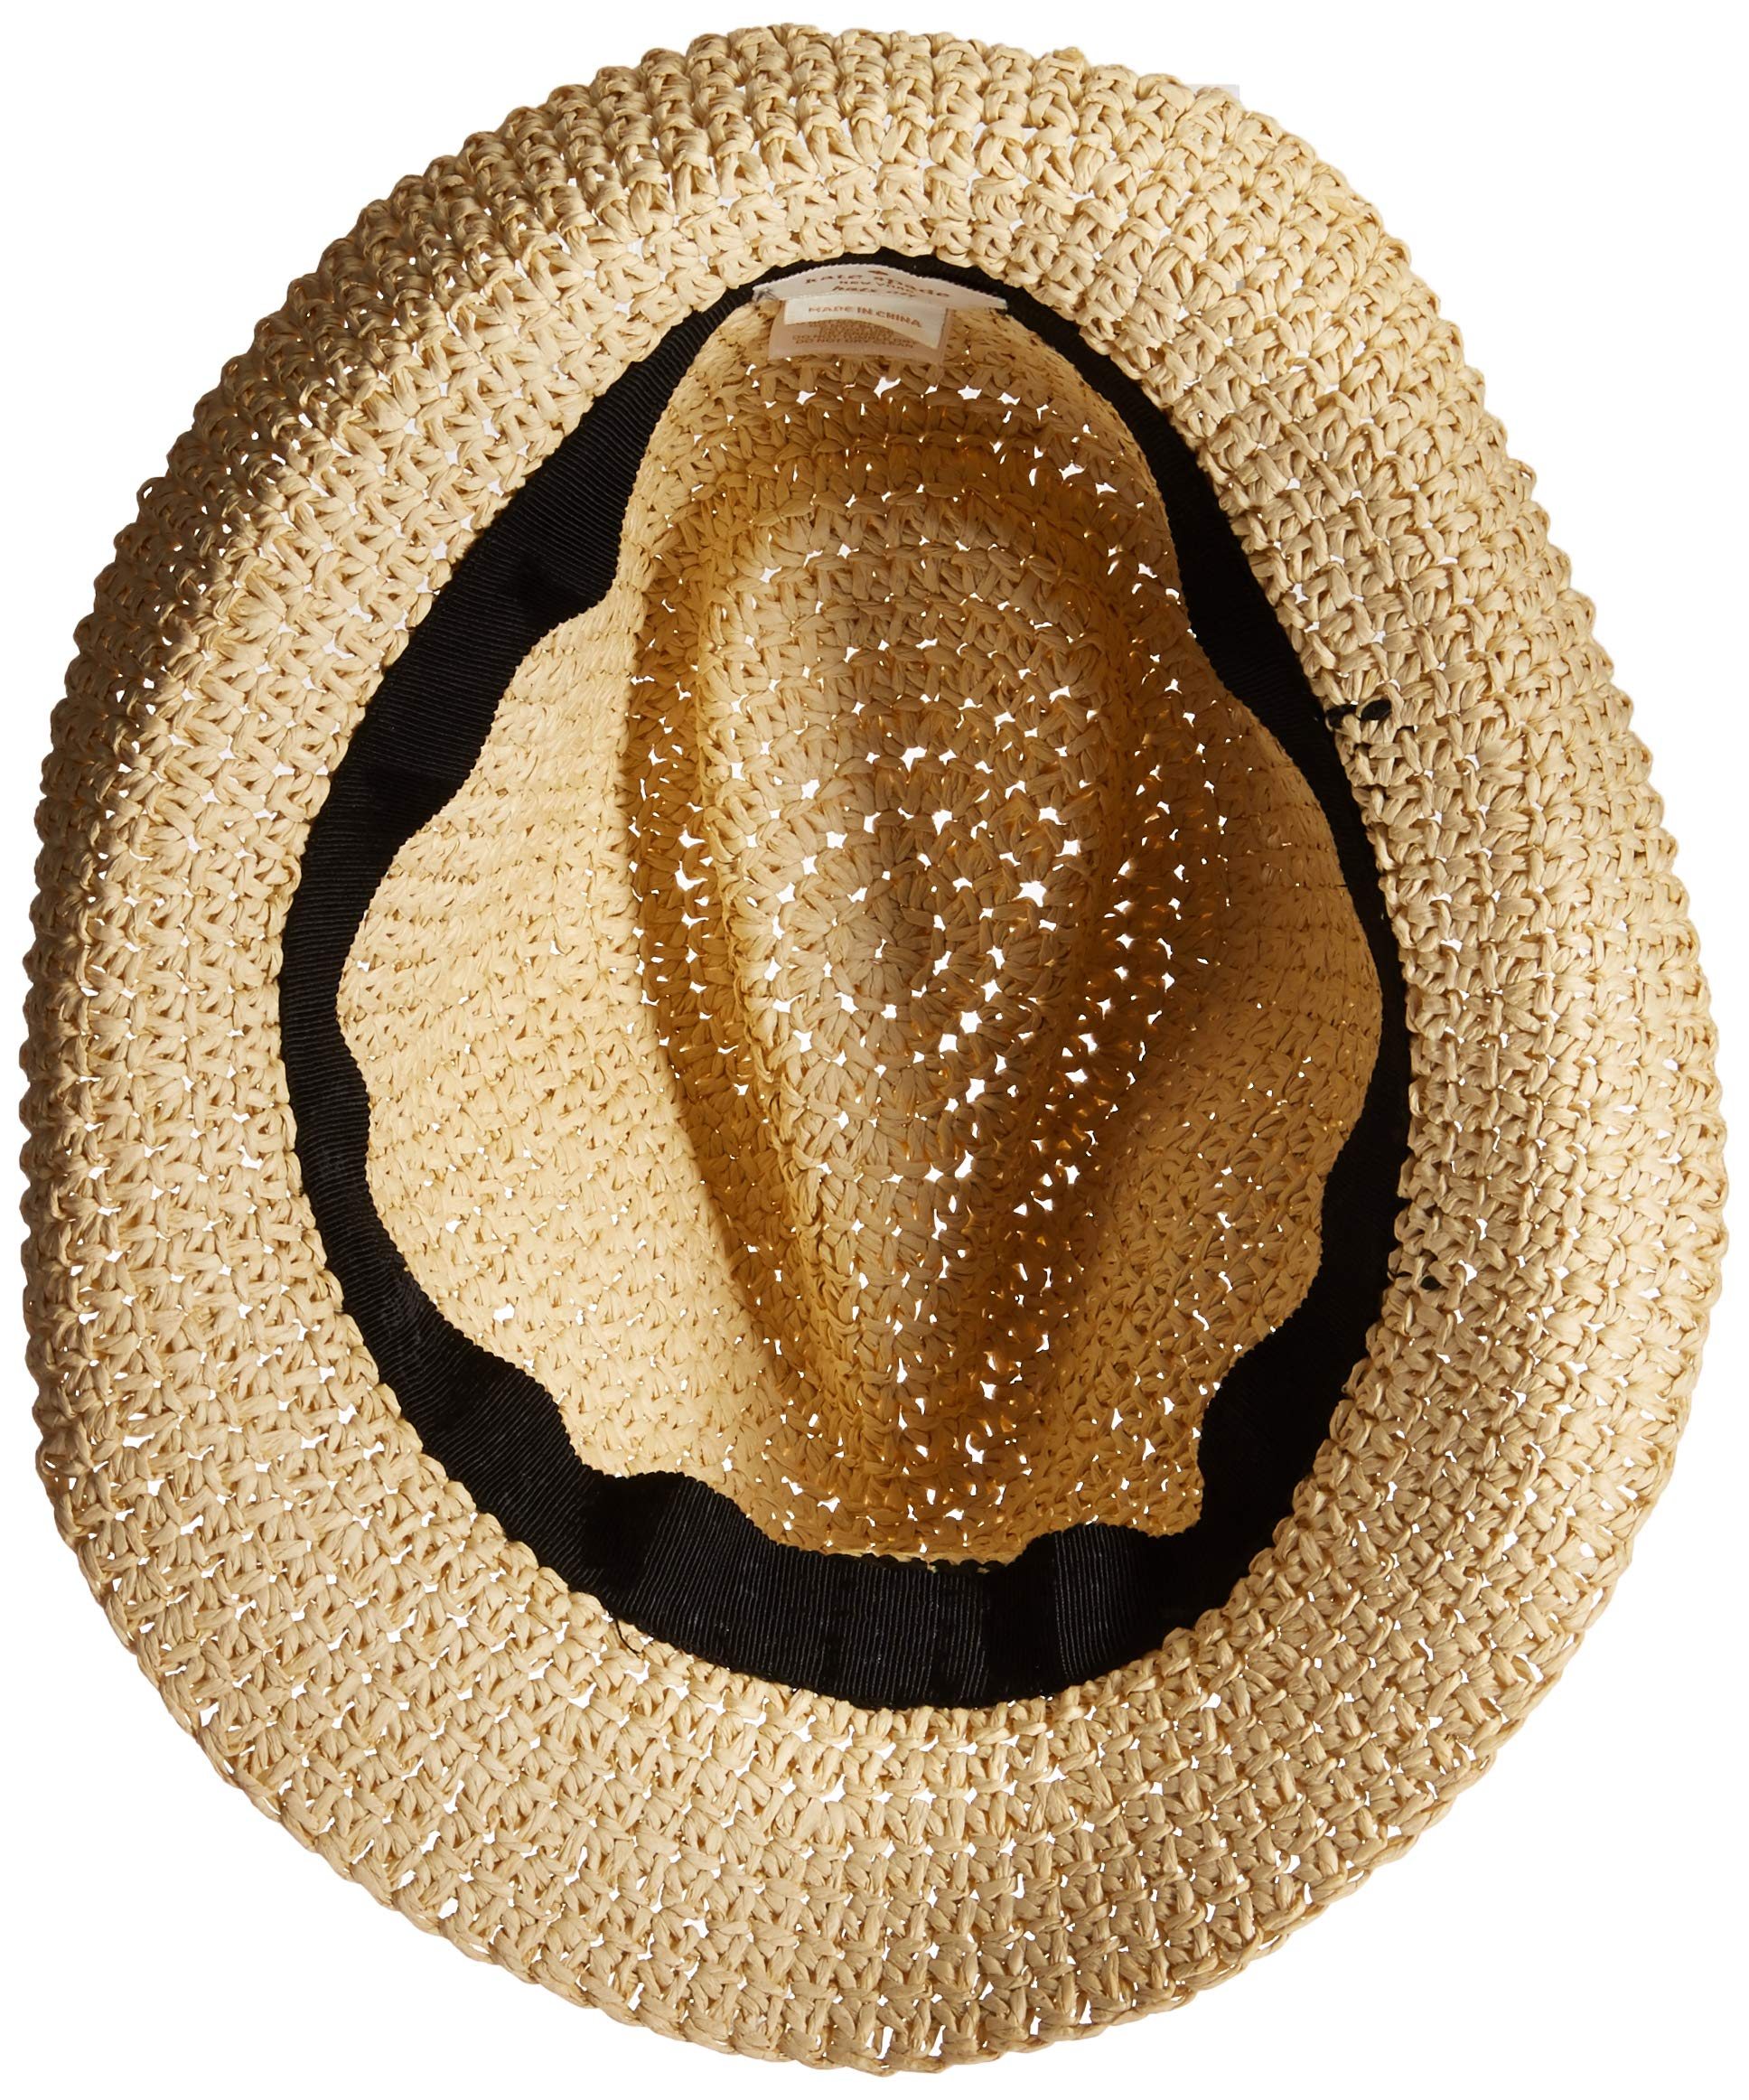 Kate Spade New York Women's Crochet Packable Fedora Natural/Black One Size by Kate Spade New York (Image #6)